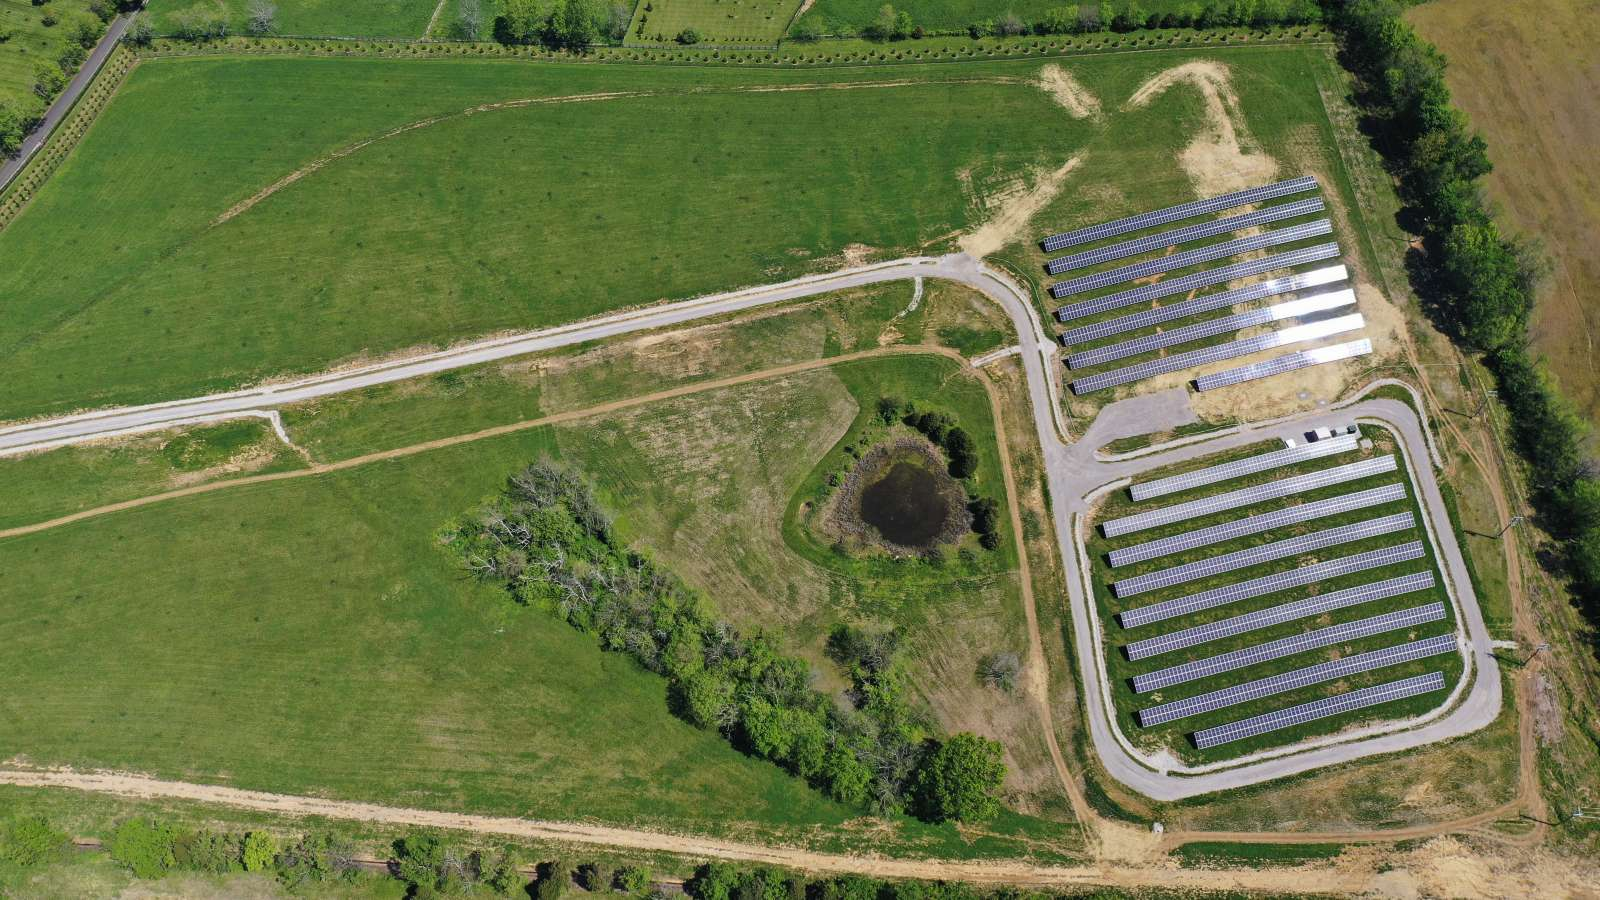 aerial view of the LG&E and KU solar share sections